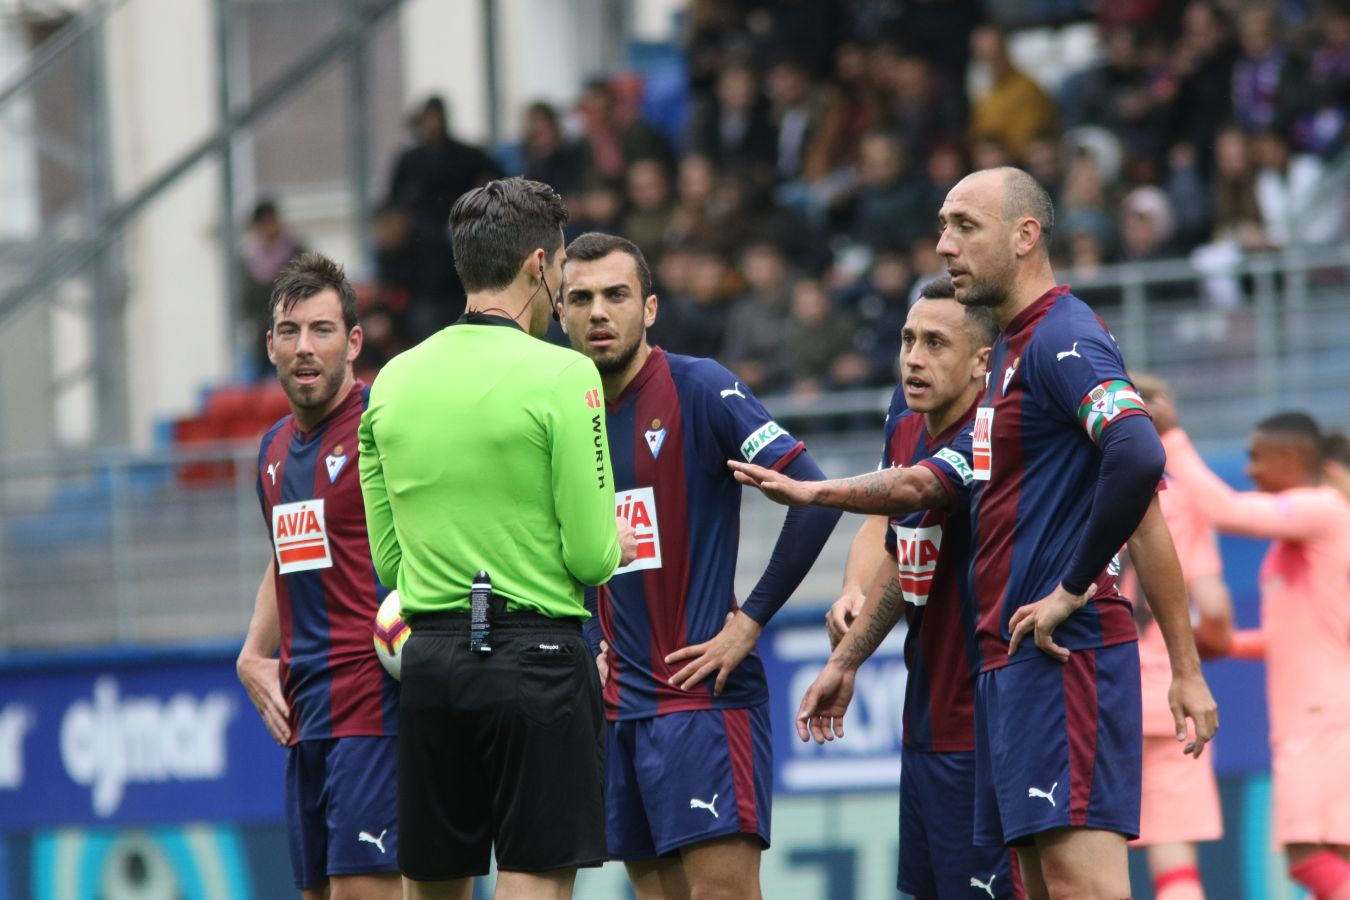 eibar-barcellona - photo #11